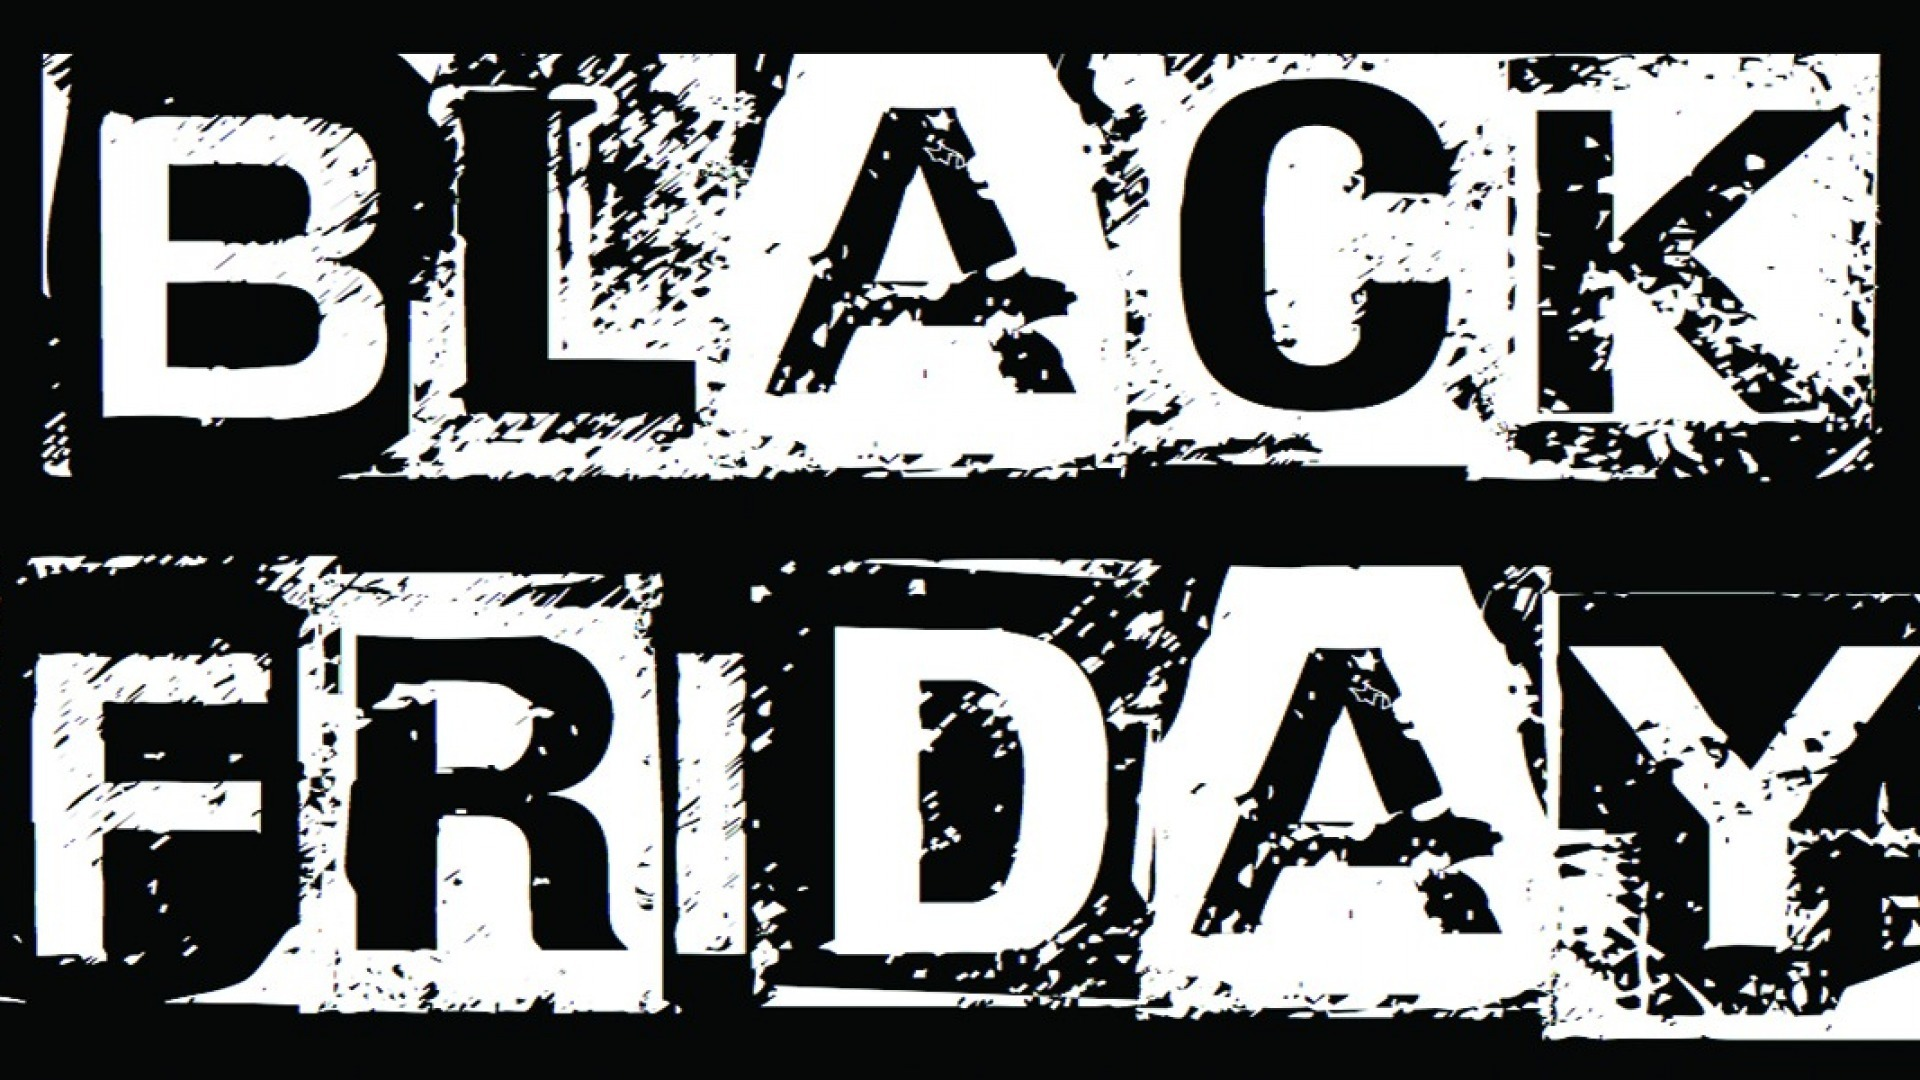 Corsa agli sconti del Black Friday